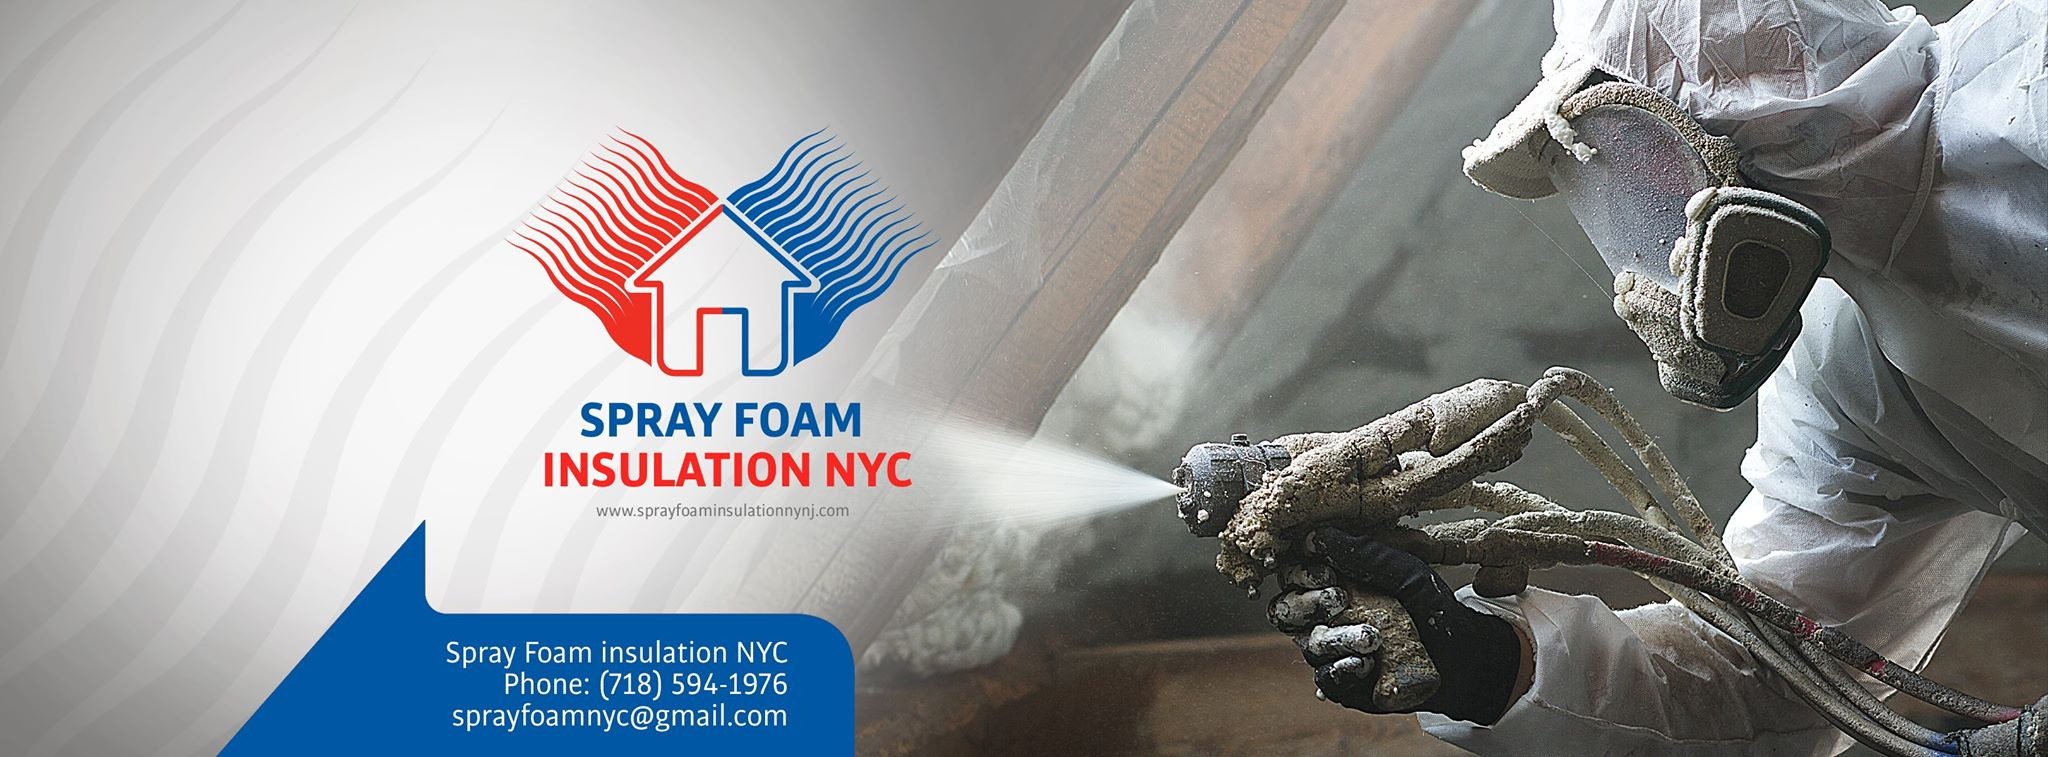 Spray Foam Insulation Nyc New York New Jersey Commercial